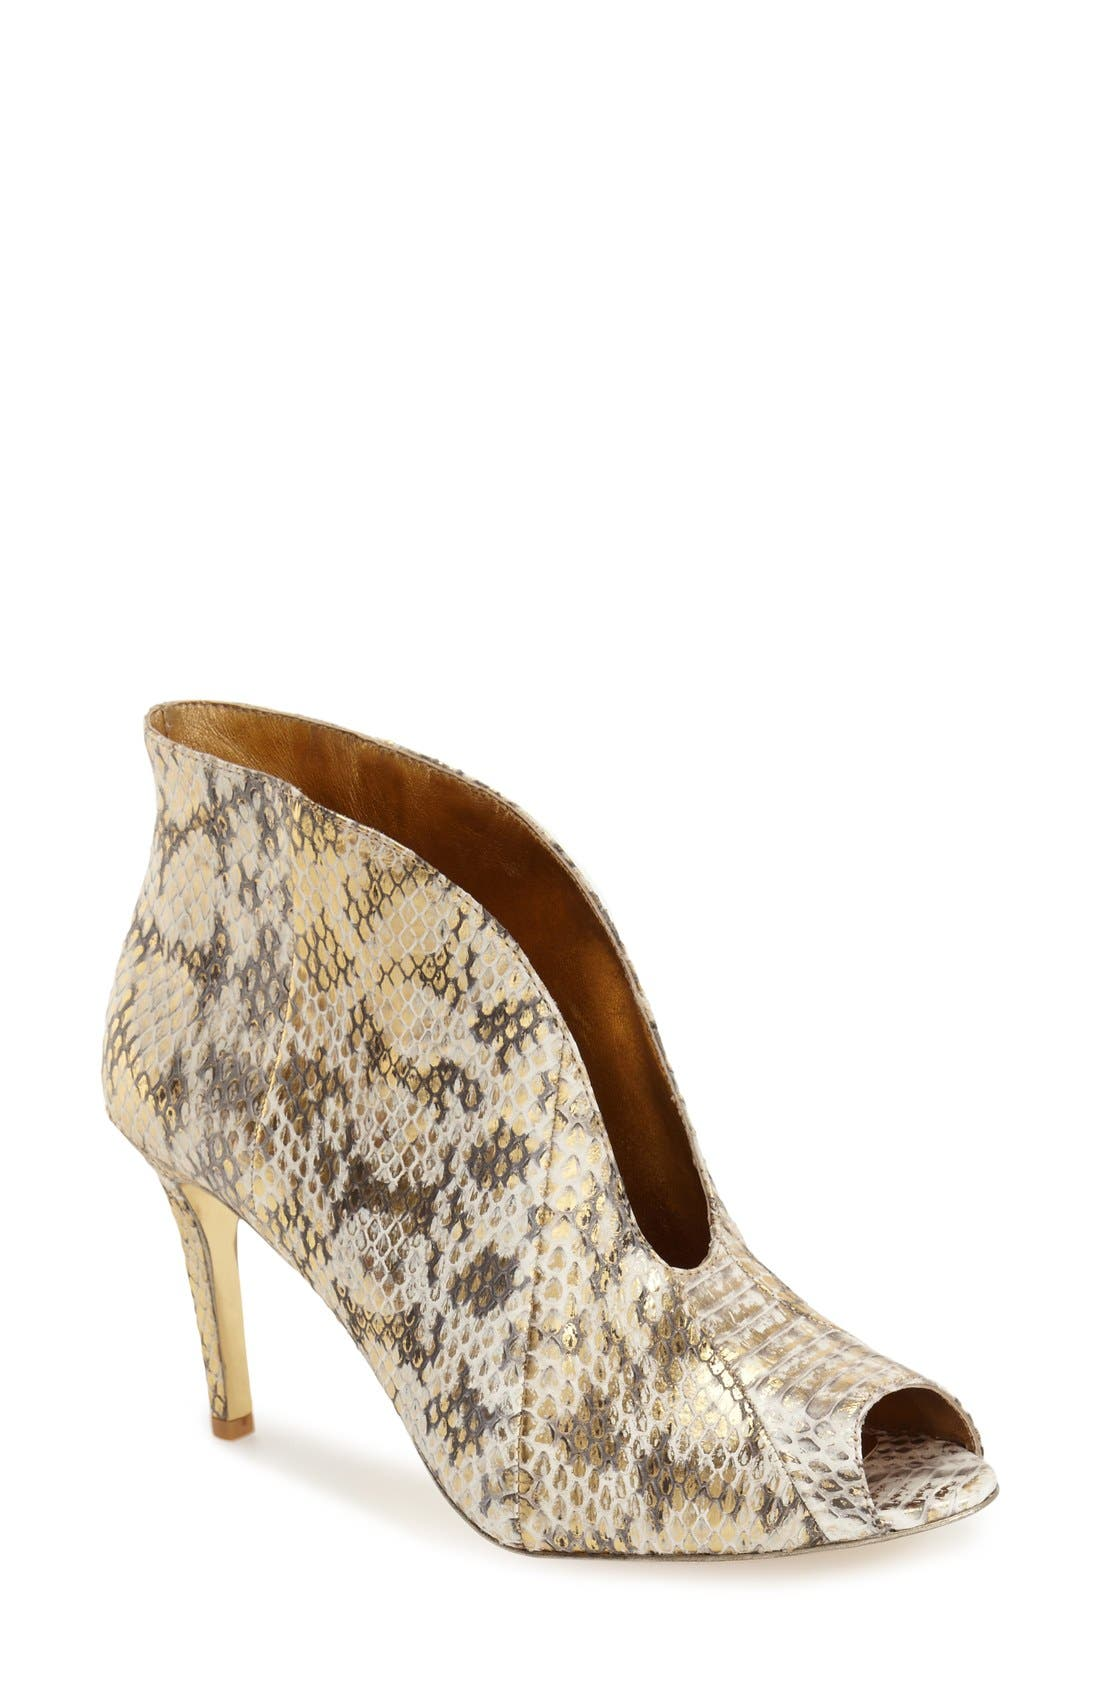 Alternate Image 1 Selected - VC Signature 'Ronan' Peep Toe Bootie